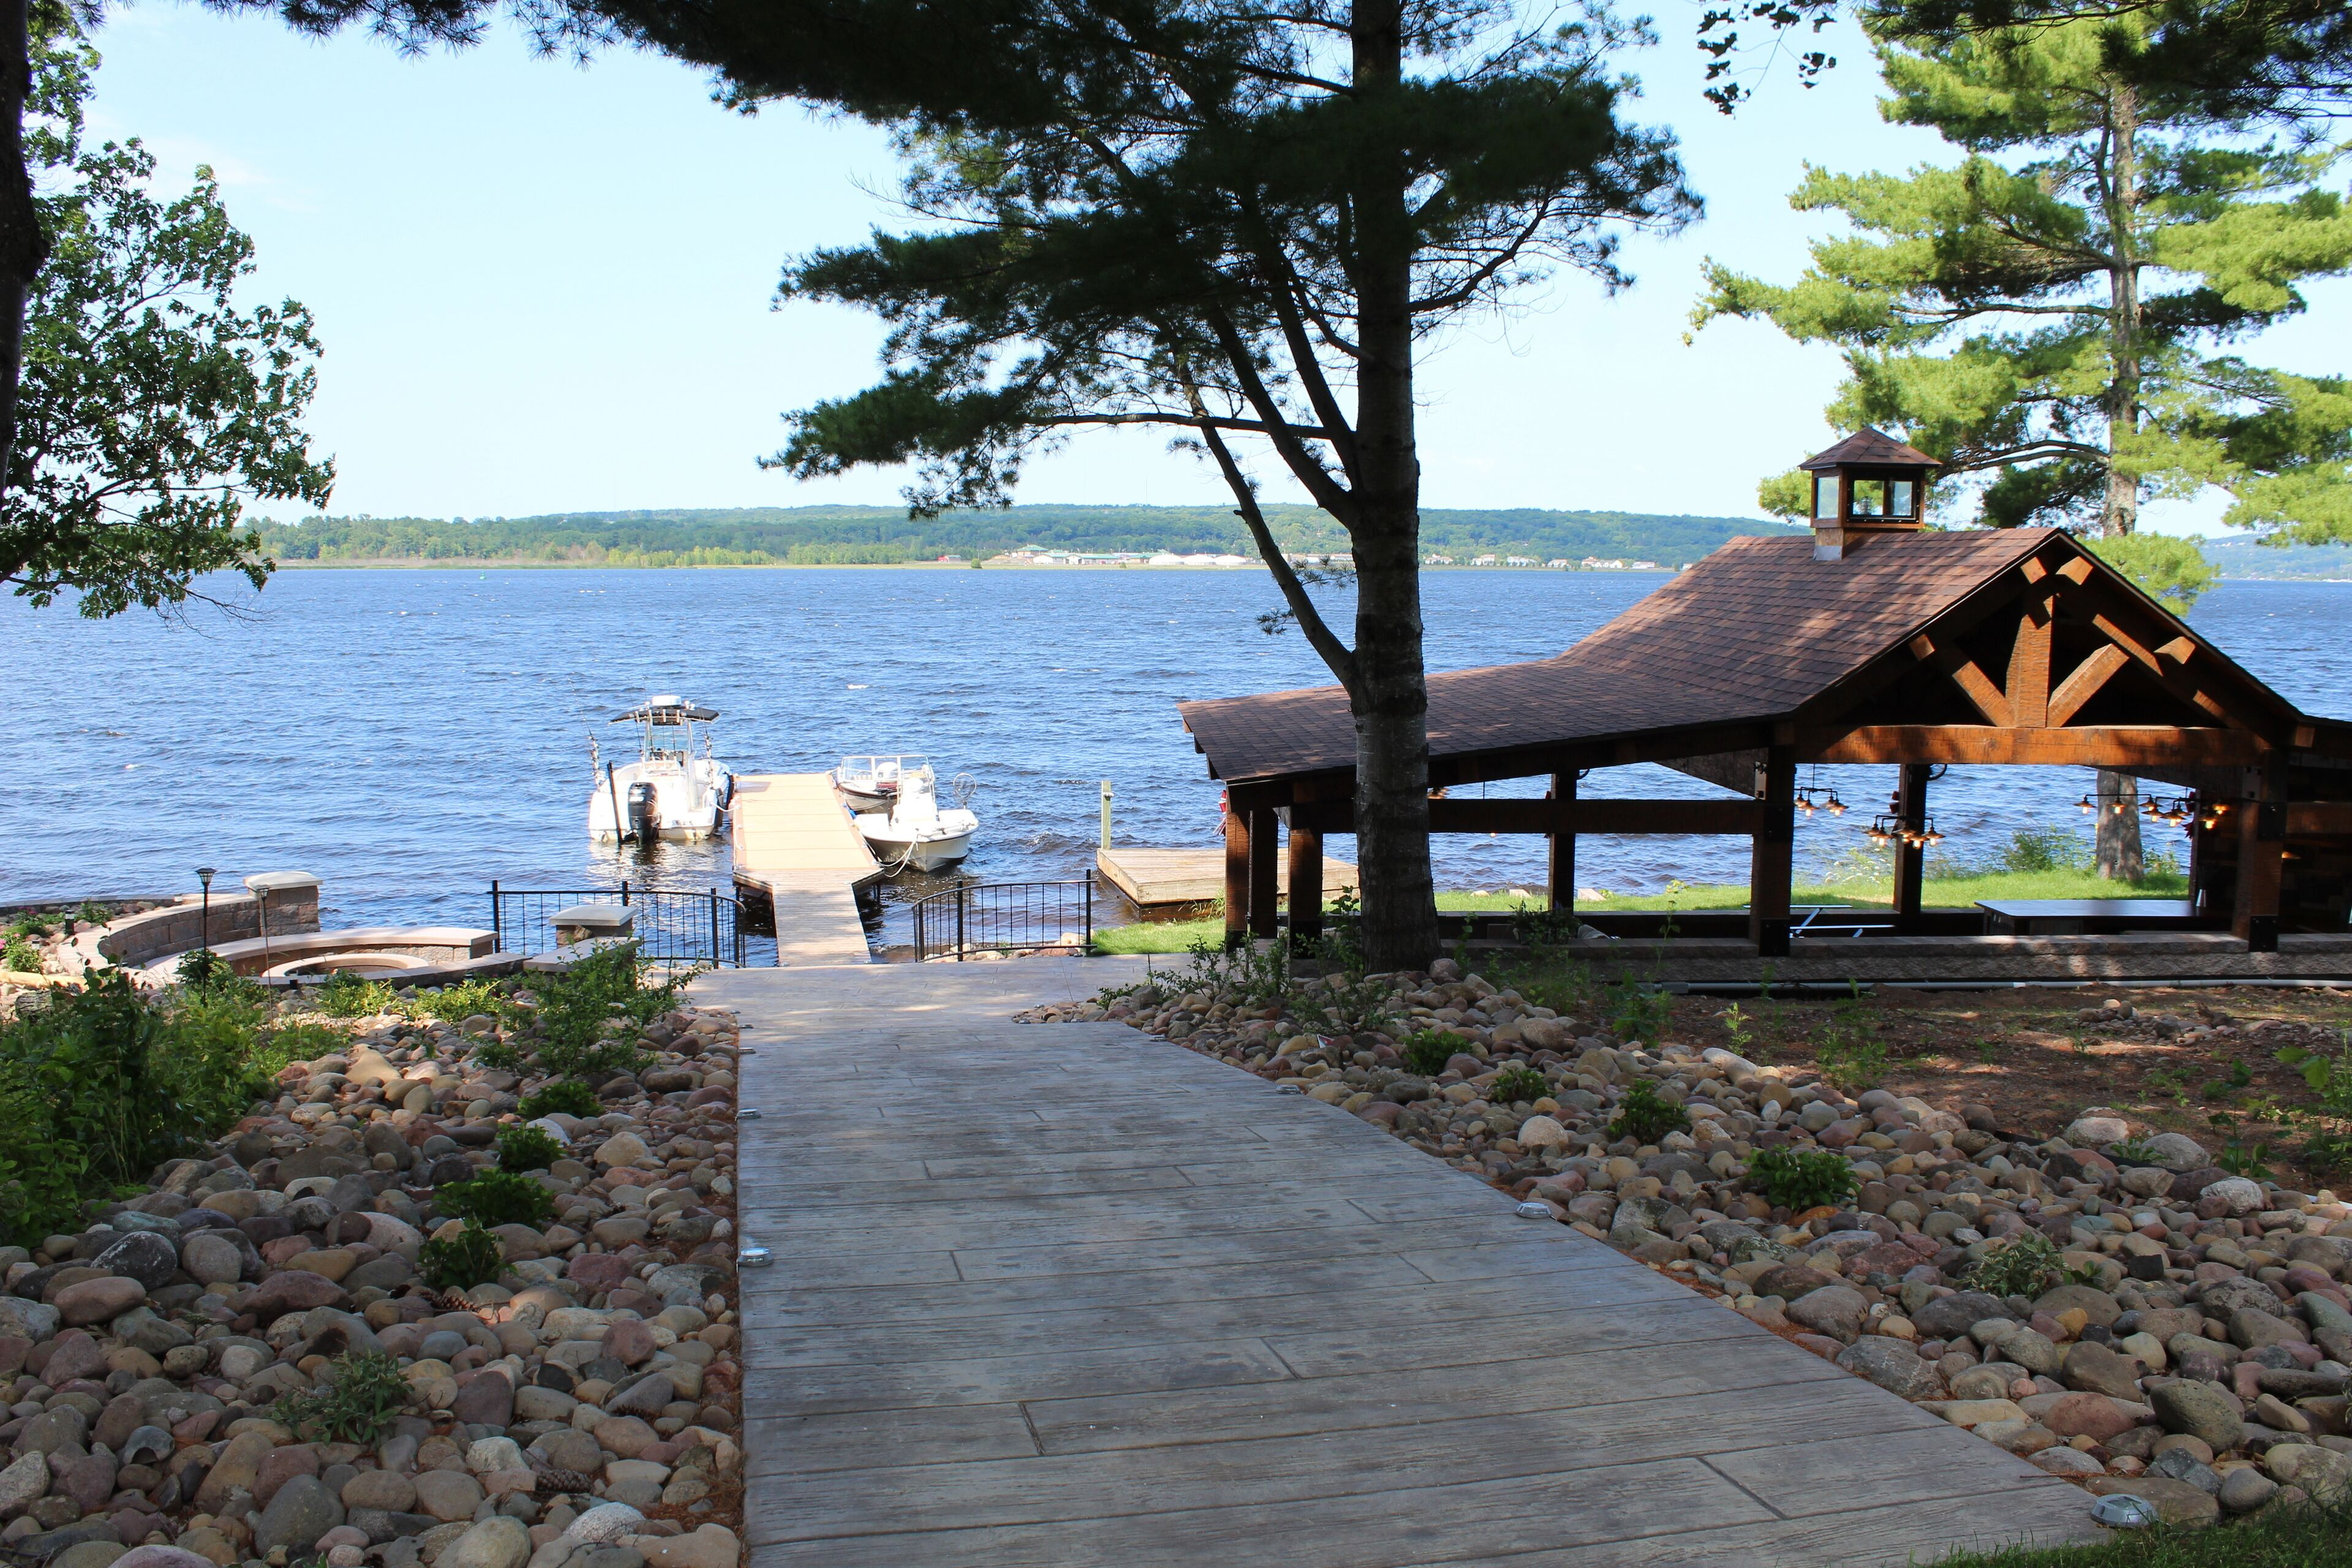 Kemp S Rentals Loft Rental Sauna Next To Portage Lake Beach Fire Pit Pavilion Dollar Bay Hotelbewertungen 2020 Expedia At